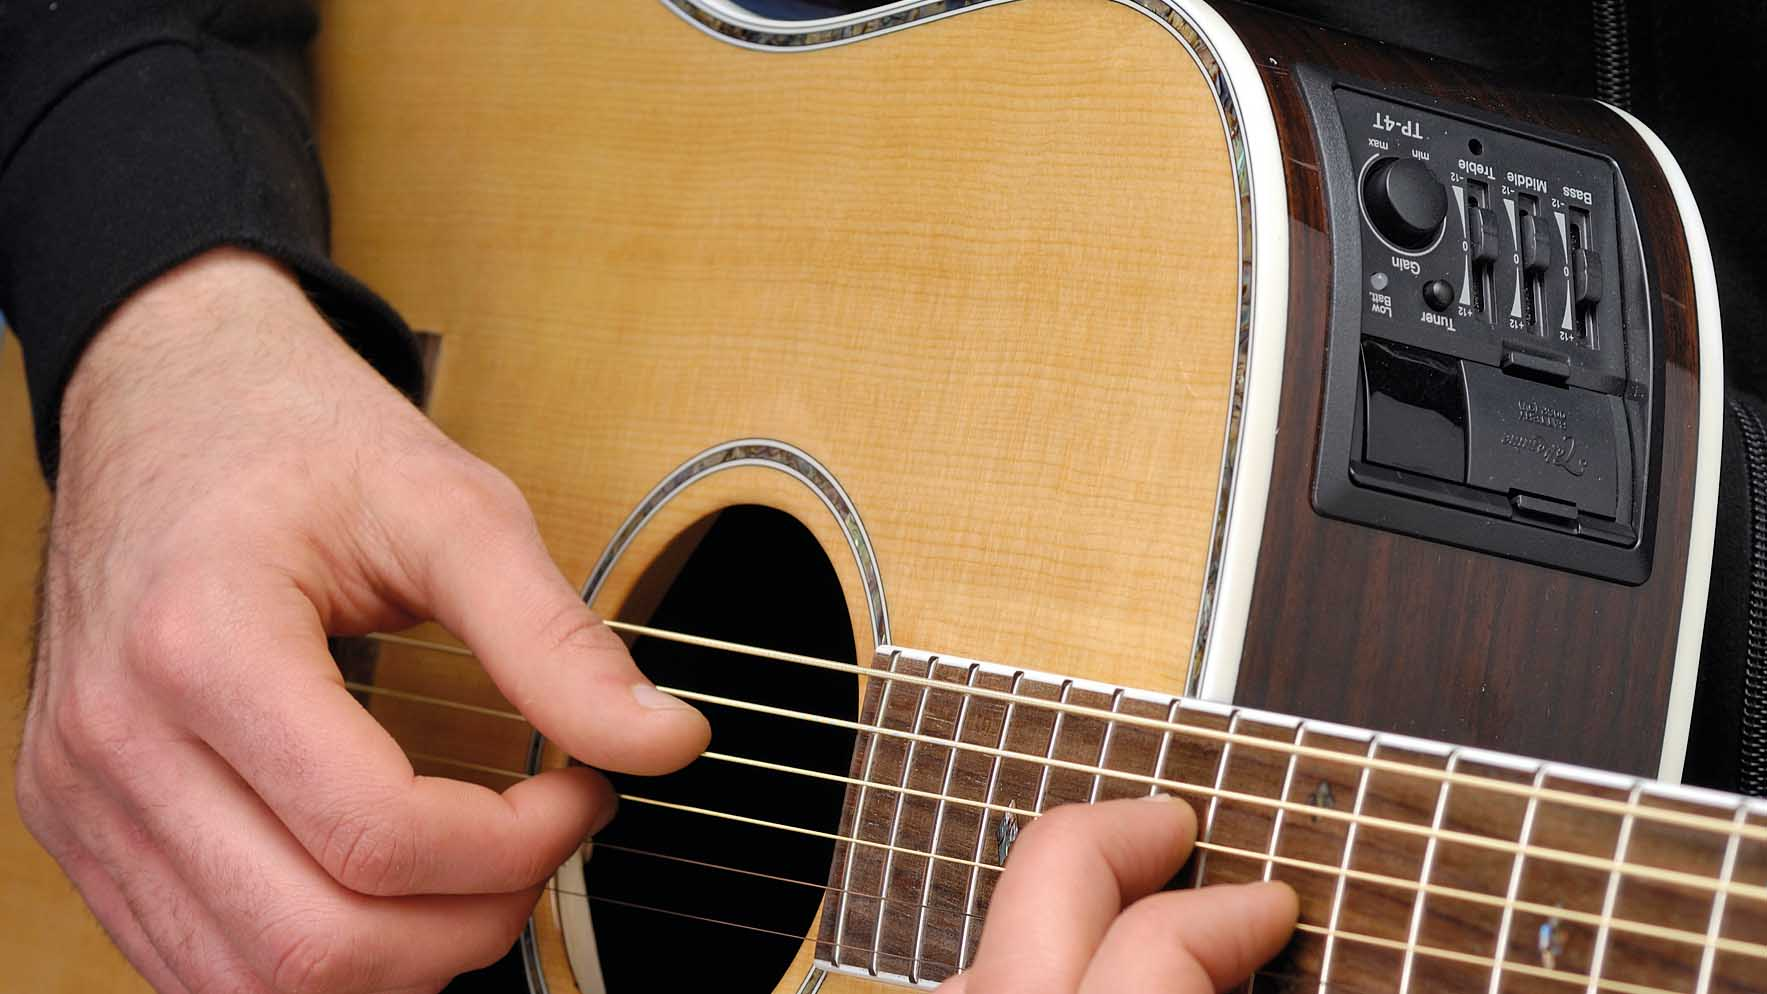 10 ways to improve your acoustic guitar sound using EQ | MusicRadar